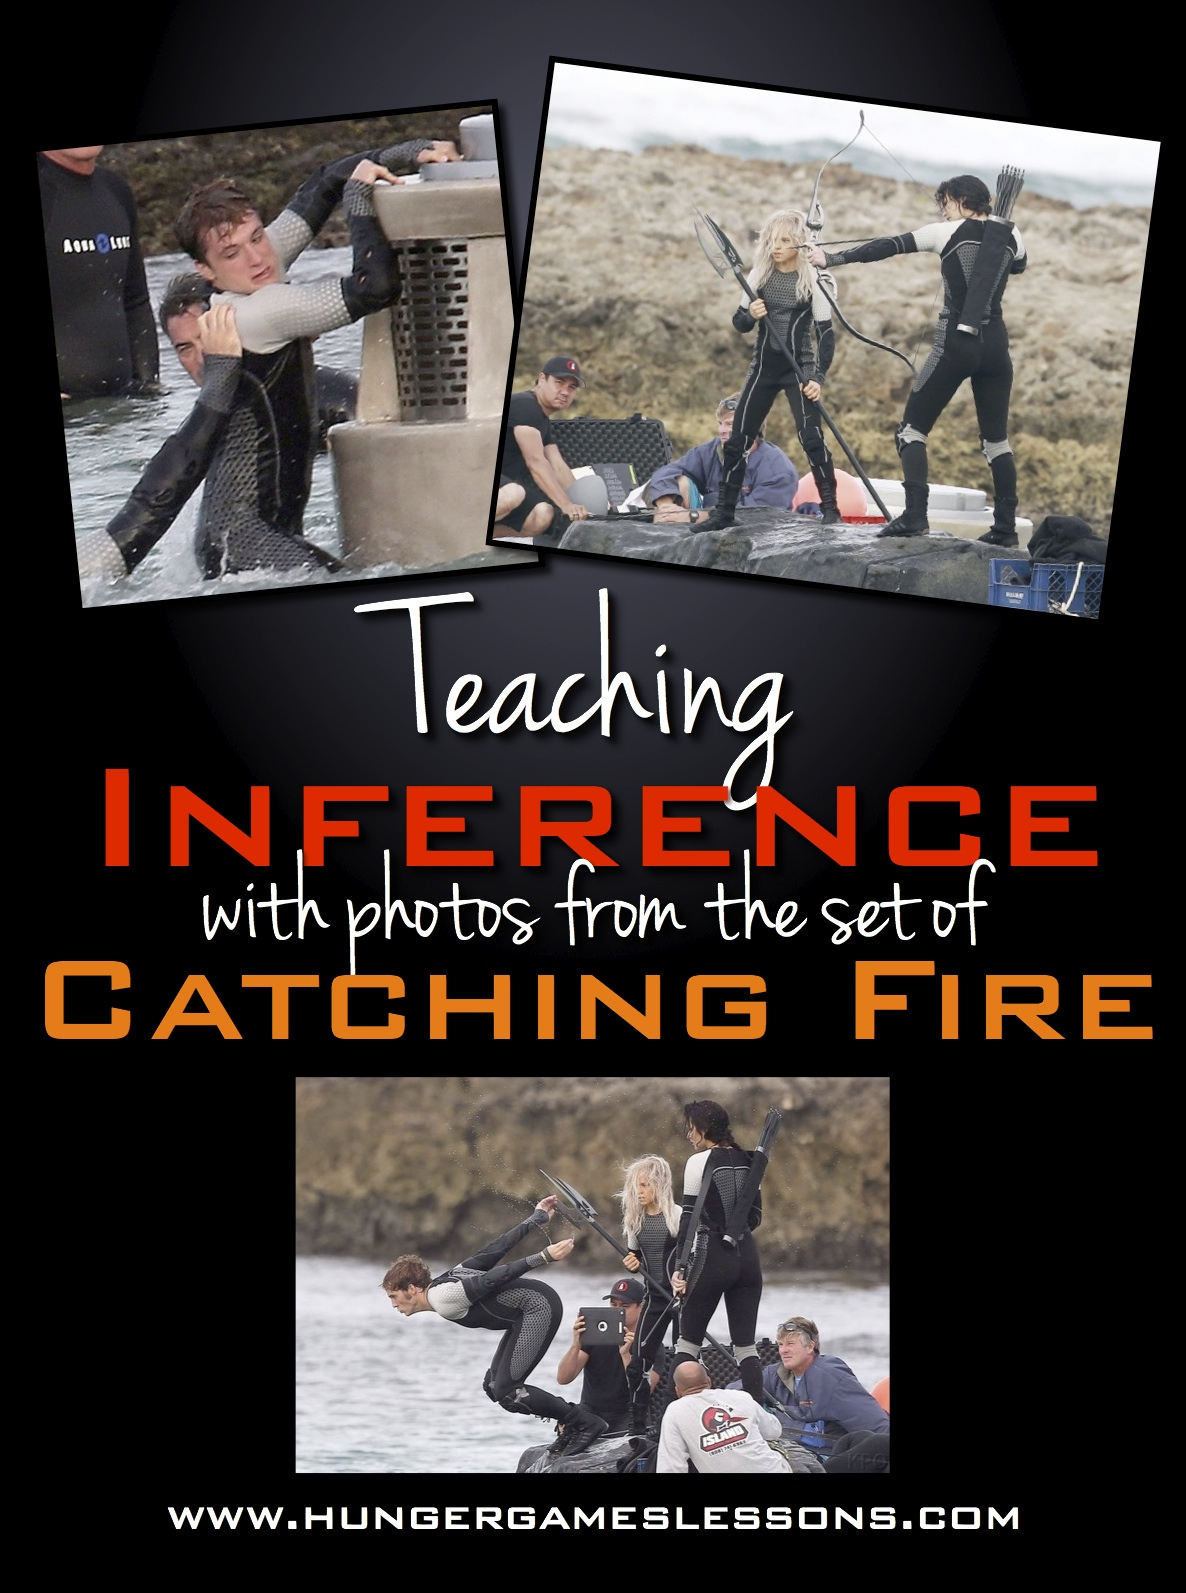 Hunger Games Lessons Use Catching Fire Set Photos To